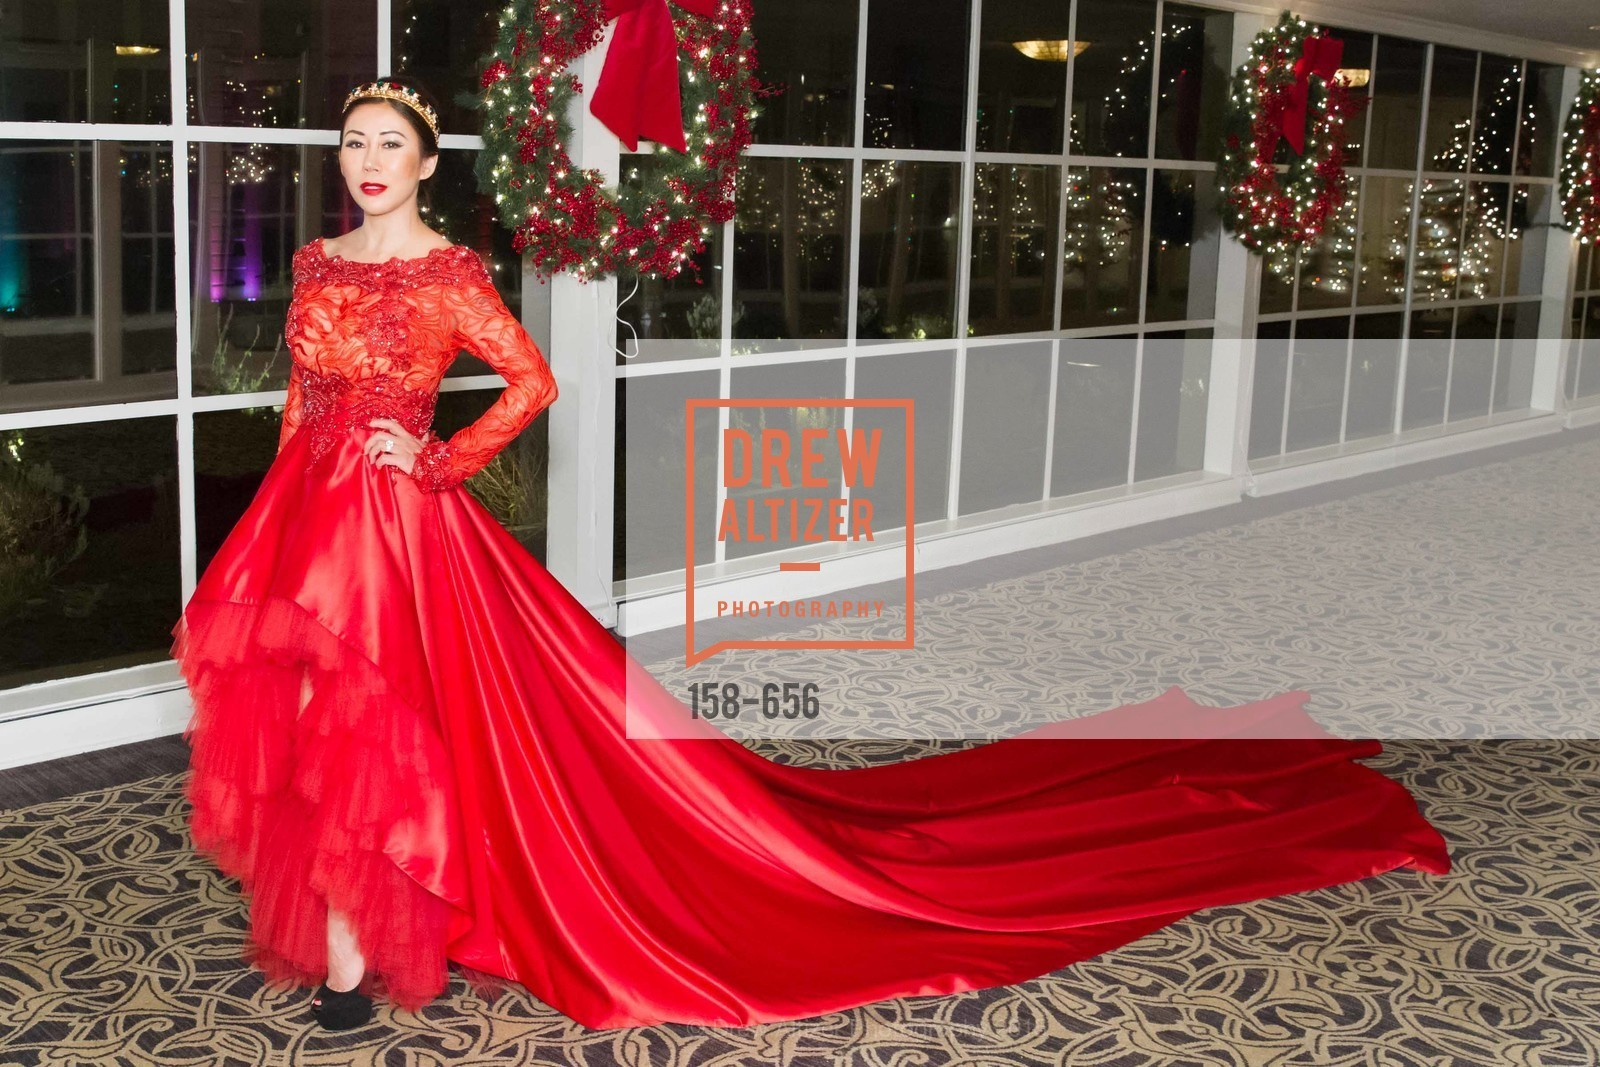 Rumiko McCarthy, Joyful Holiday Toy Drive and Rumiko Birthday Bash, Fairmont, Pavilion Room, December 16th, 2015,Drew Altizer, Drew Altizer Photography, full-service agency, private events, San Francisco photographer, photographer california